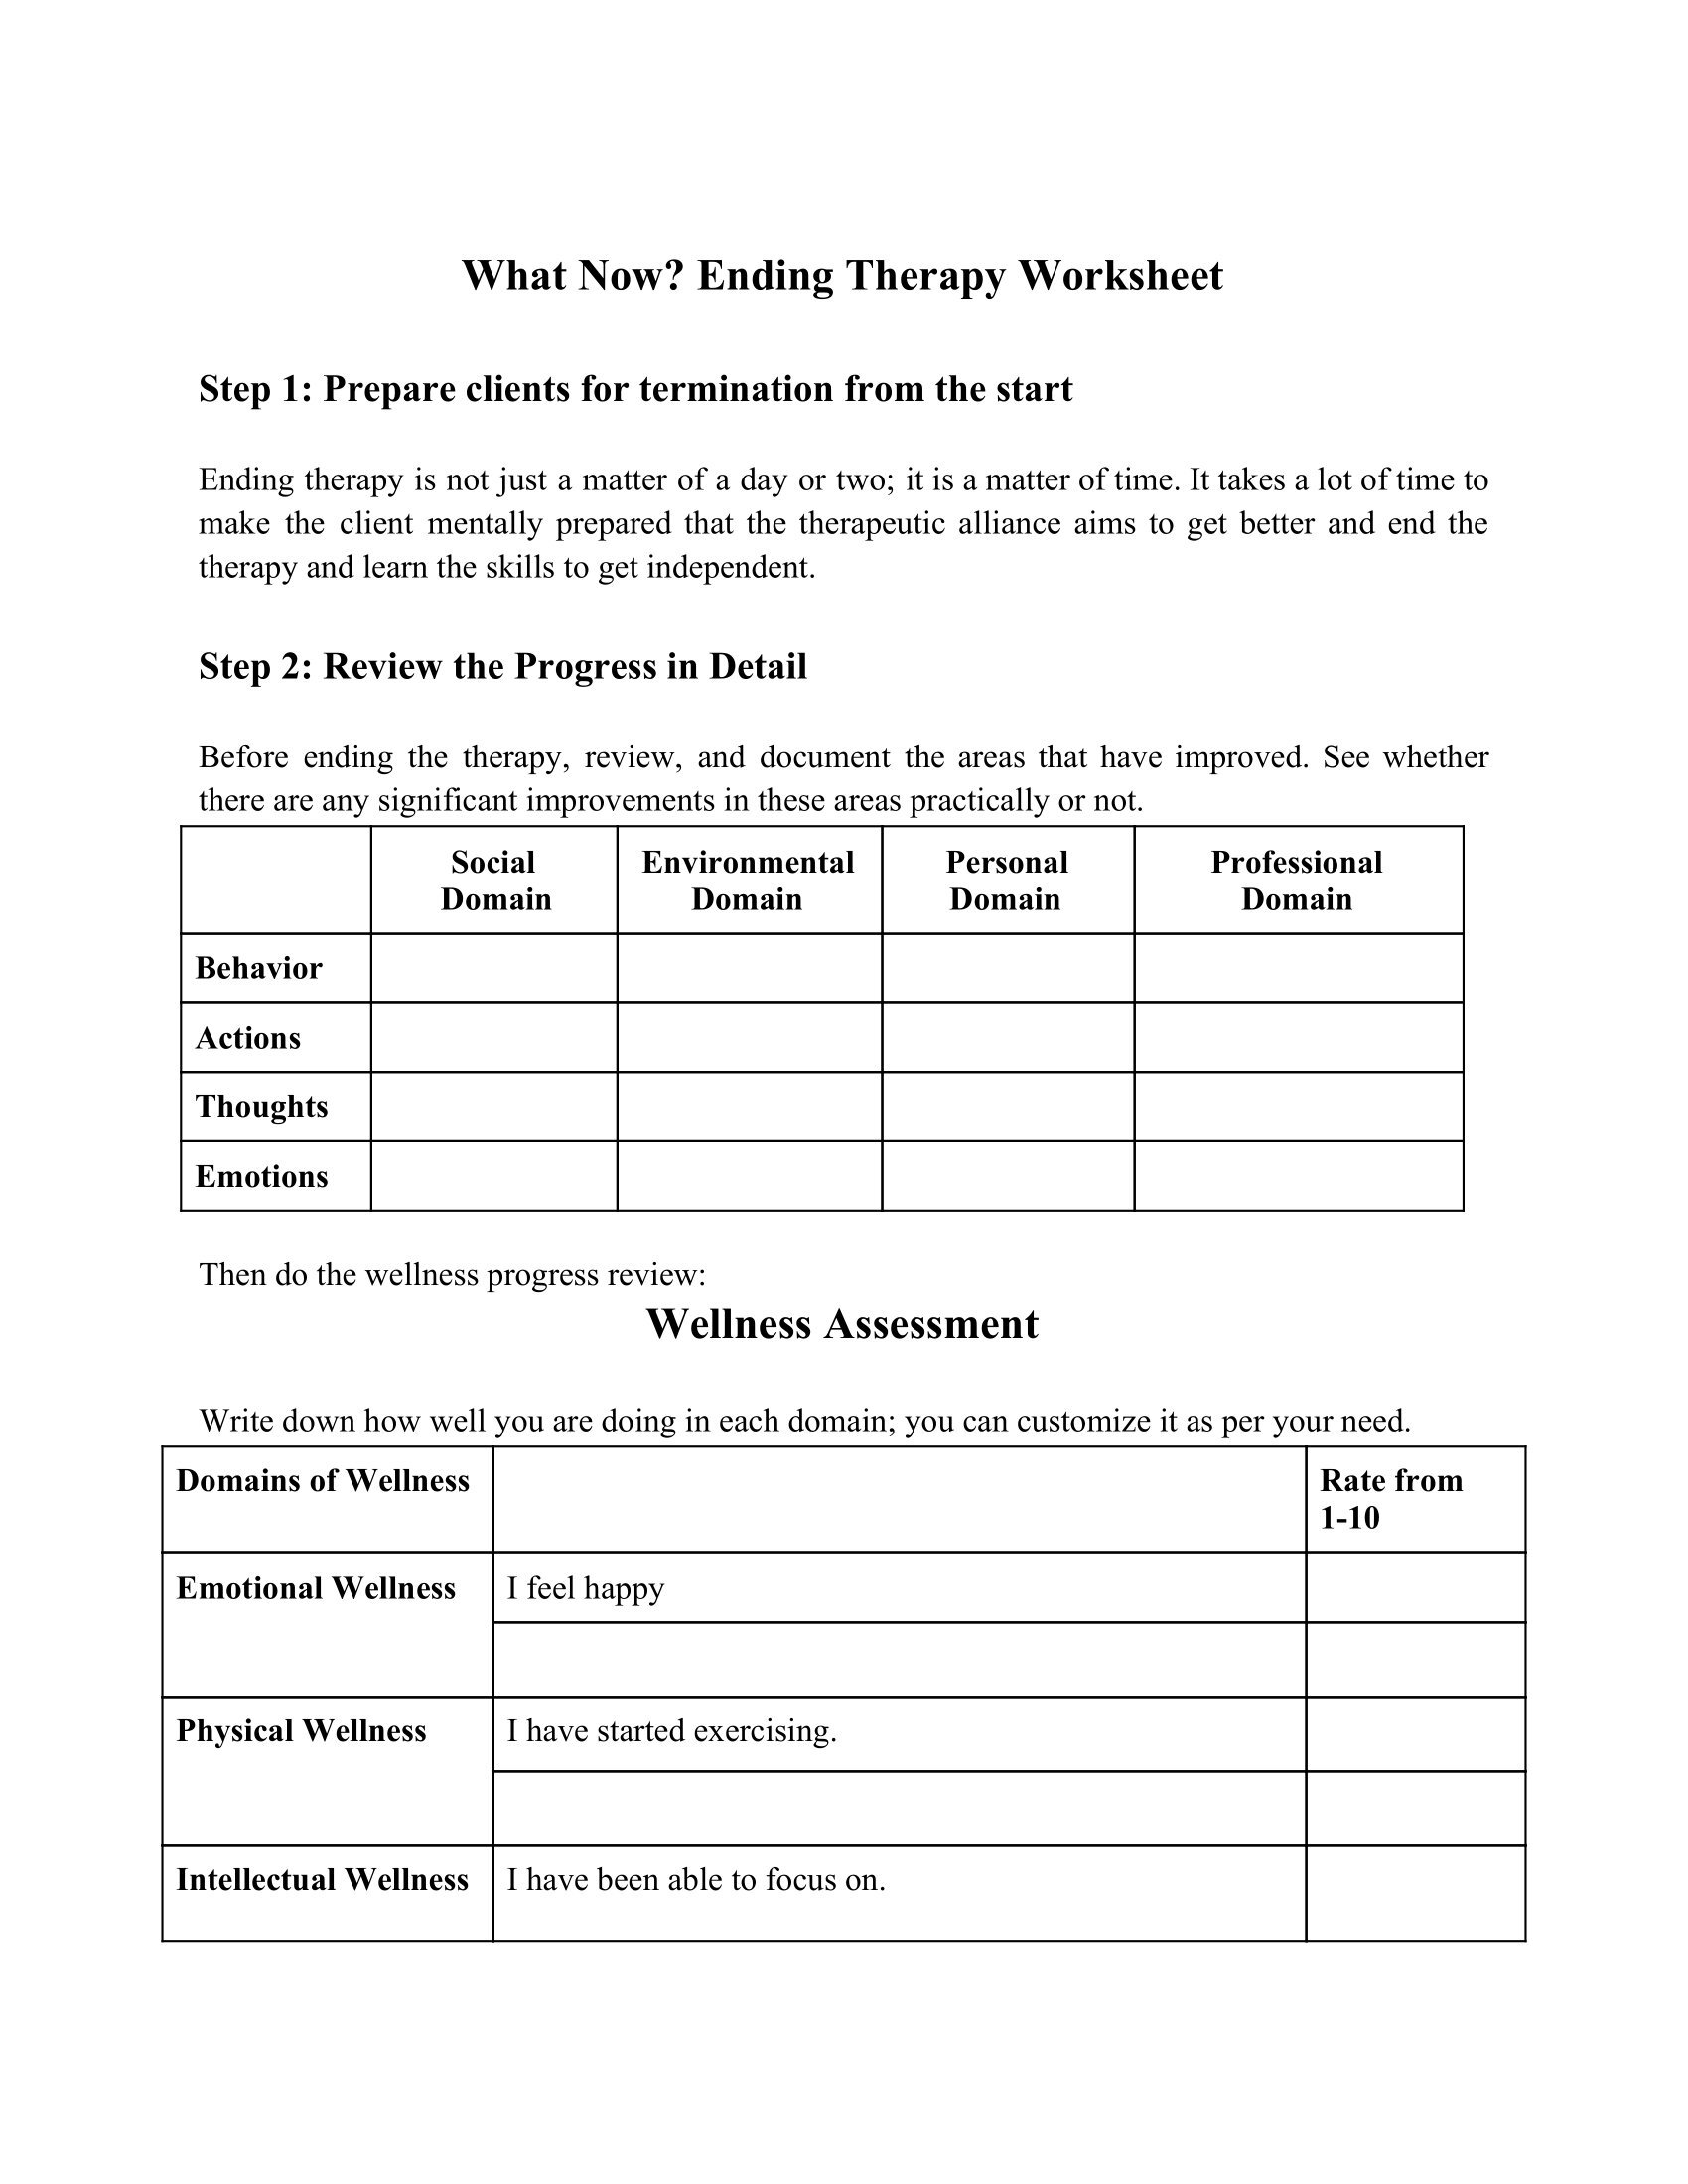 What Now? Ending Therapy Worksheet